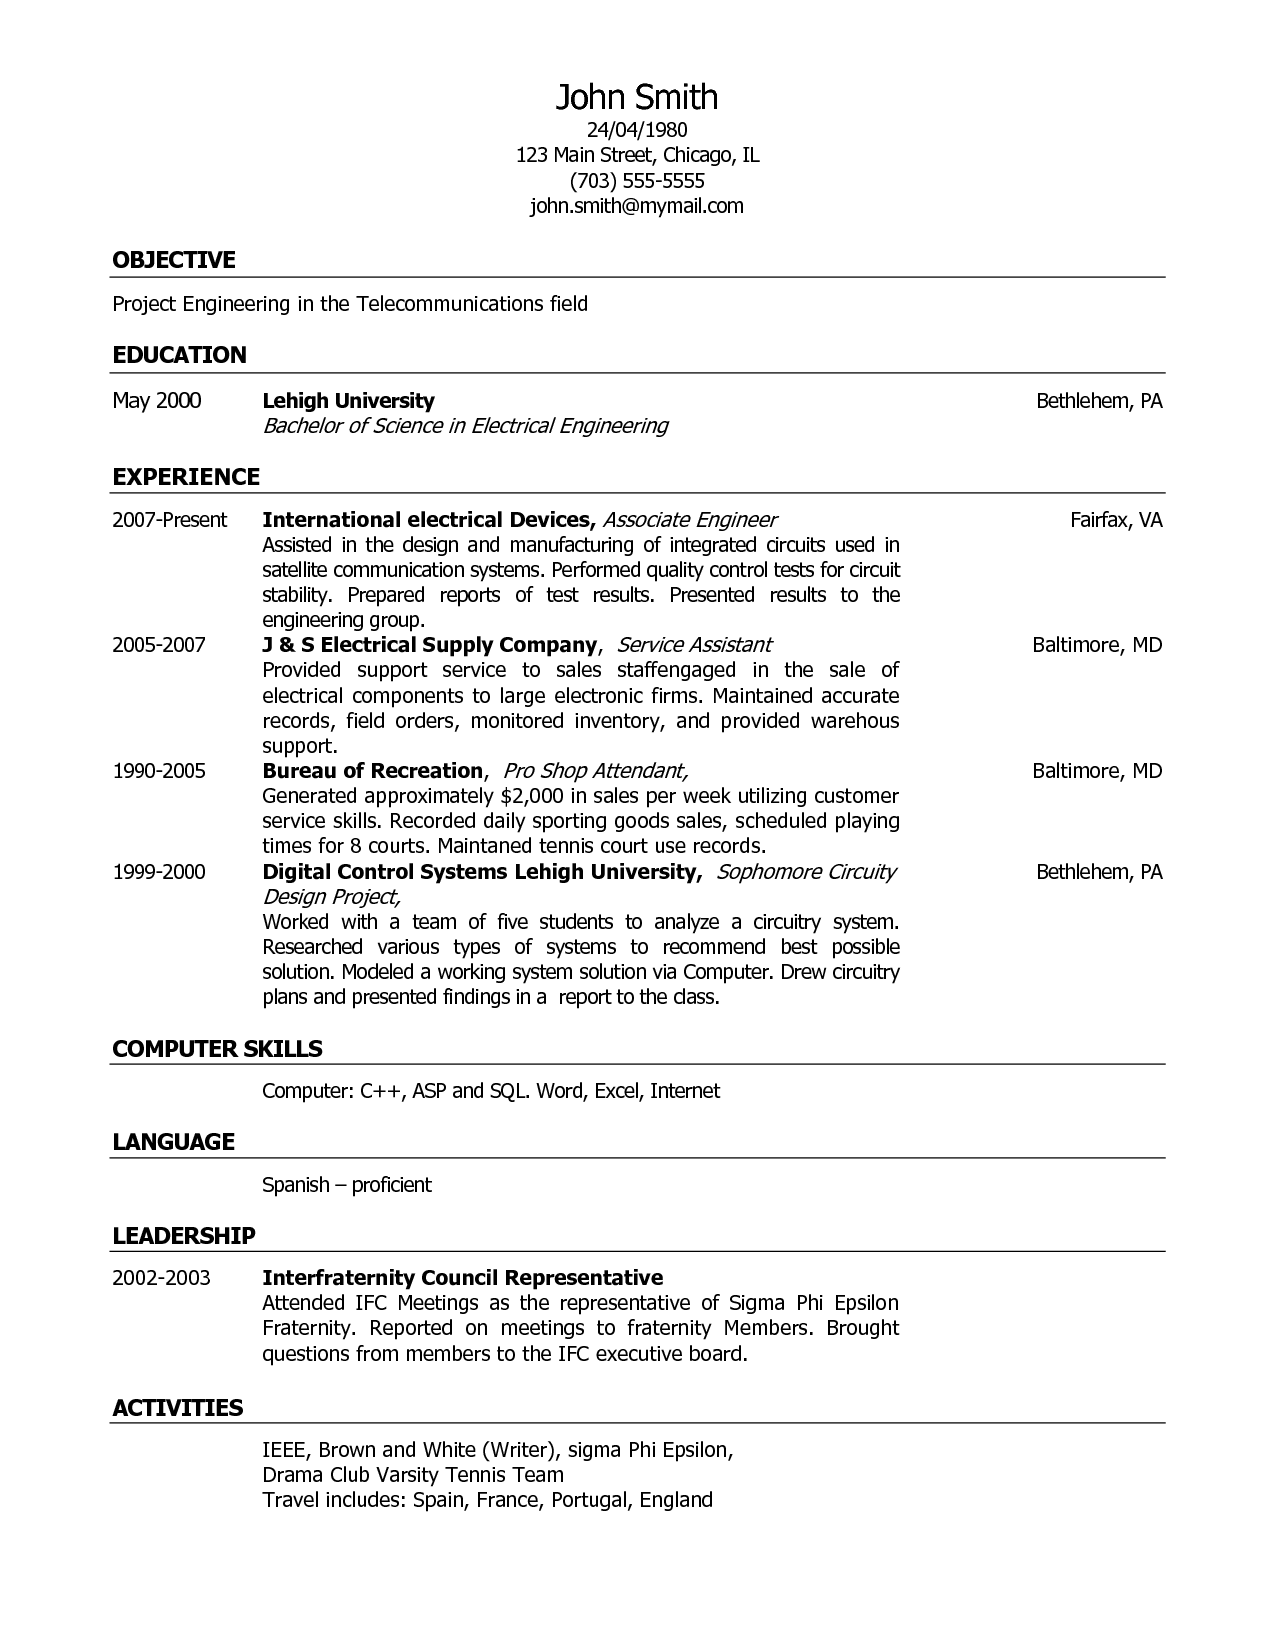 resume examples 2018 customer service resume examples. Black Bedroom Furniture Sets. Home Design Ideas